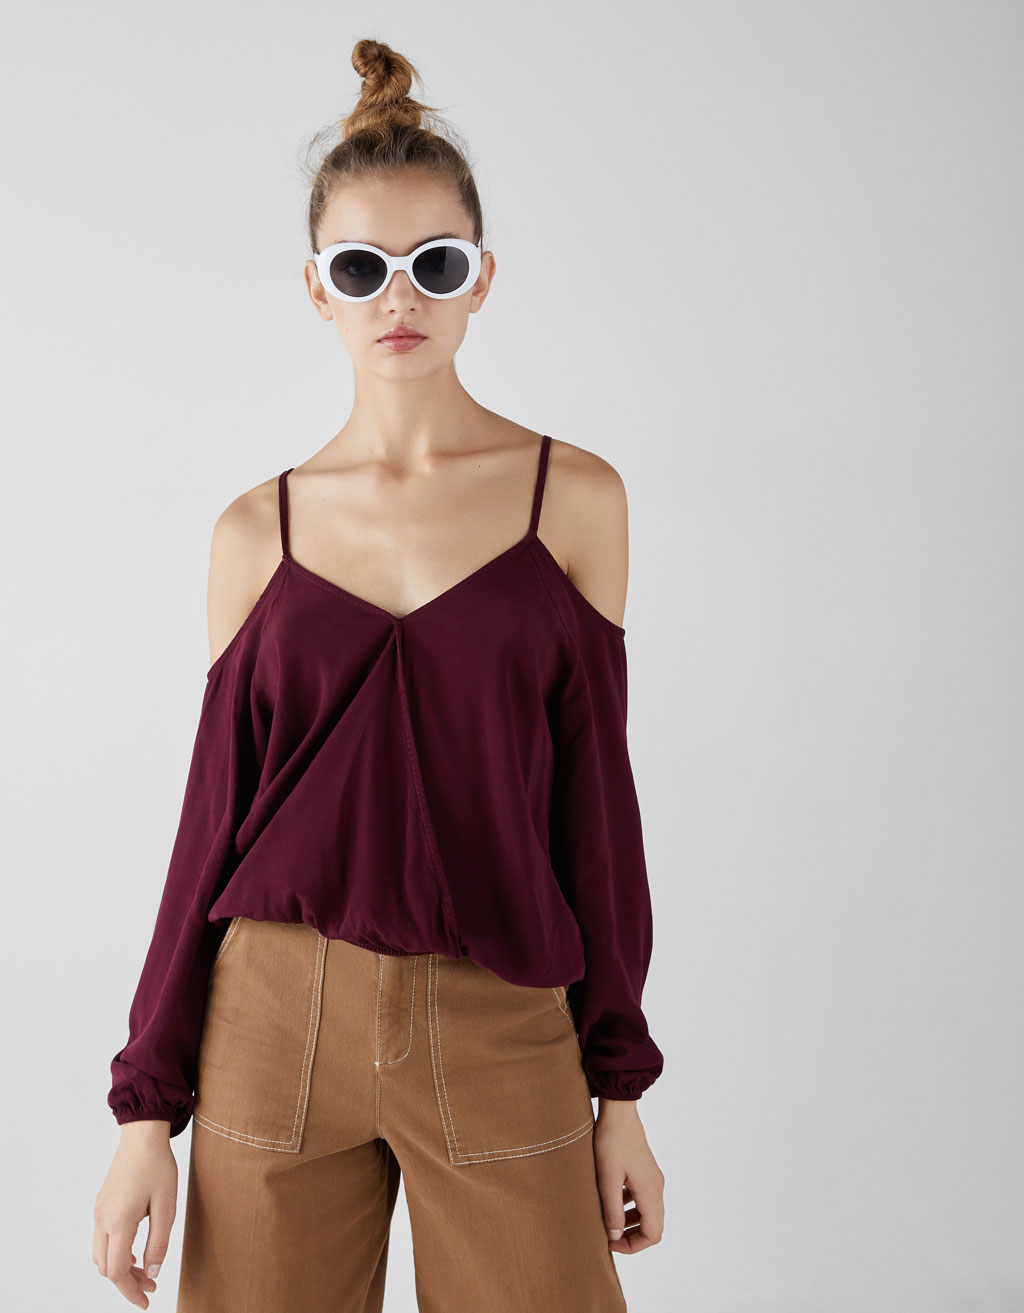 Strappy top with exposed shoulders